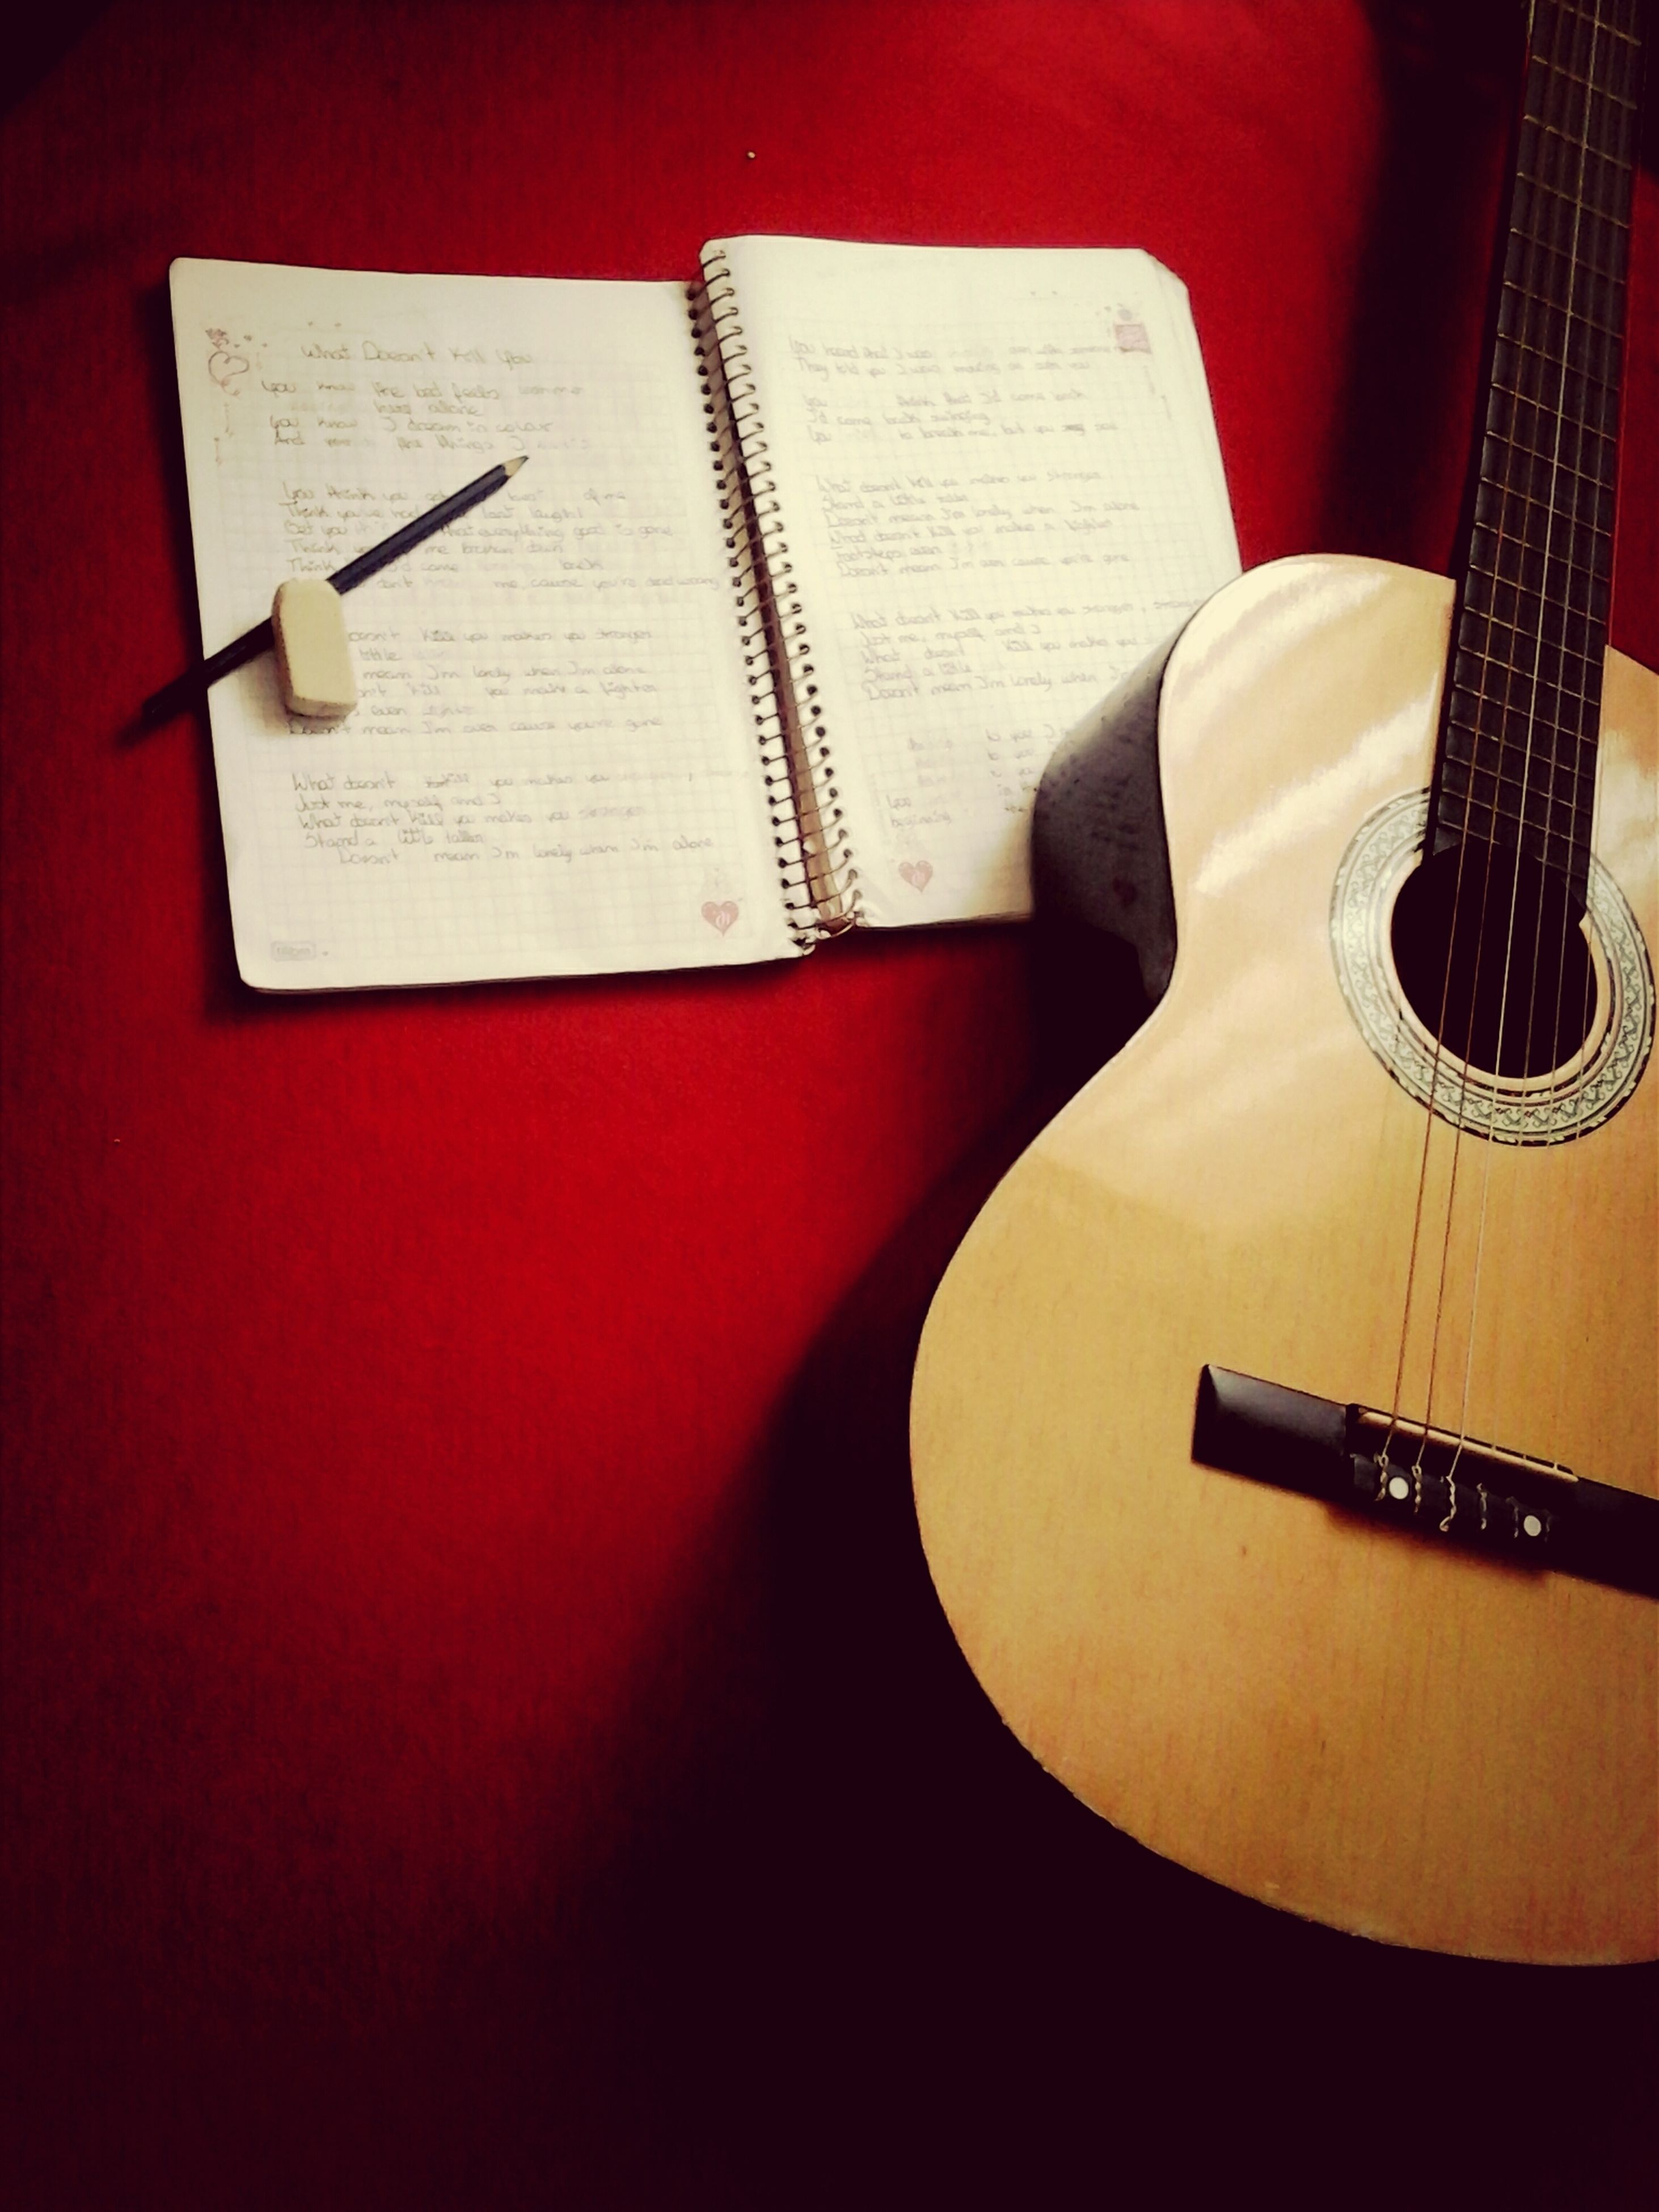 indoors, still life, table, music, close-up, high angle view, pen, book, musical instrument, paper, education, pencil, studio shot, page, single object, arts culture and entertainment, no people, guitar, musical equipment, technology